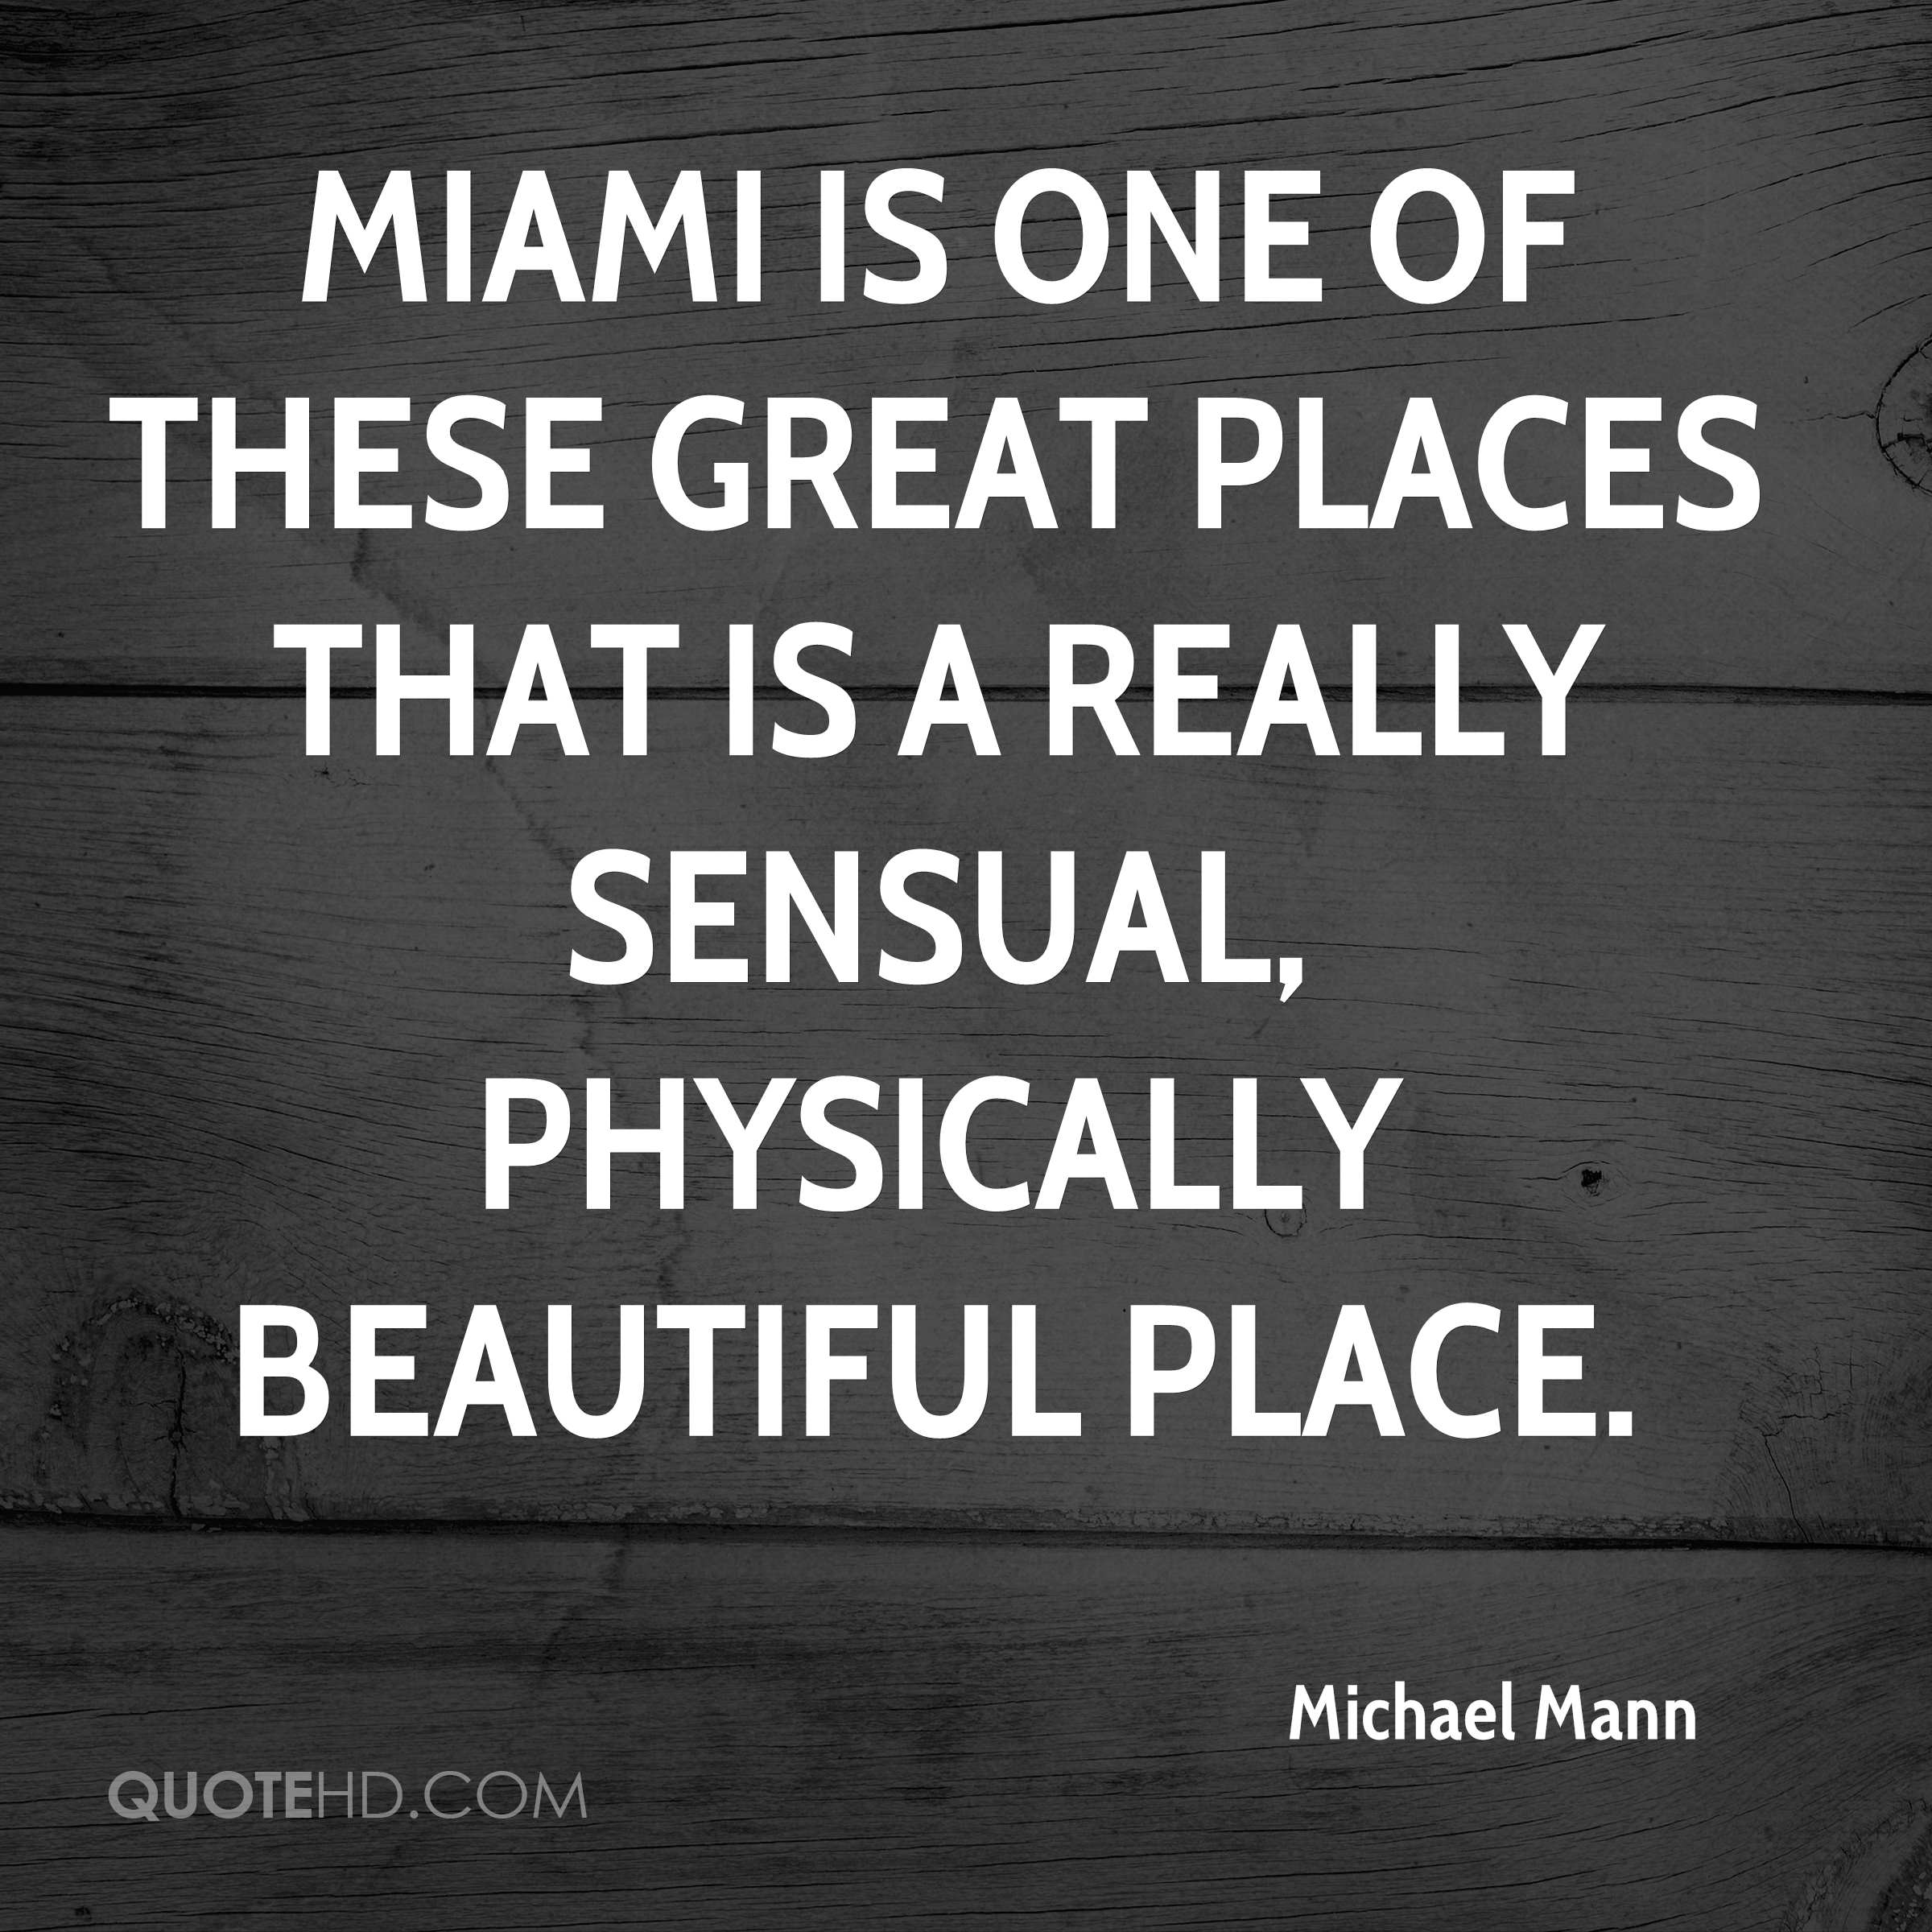 Michael Mann Quotes | QuoteHD